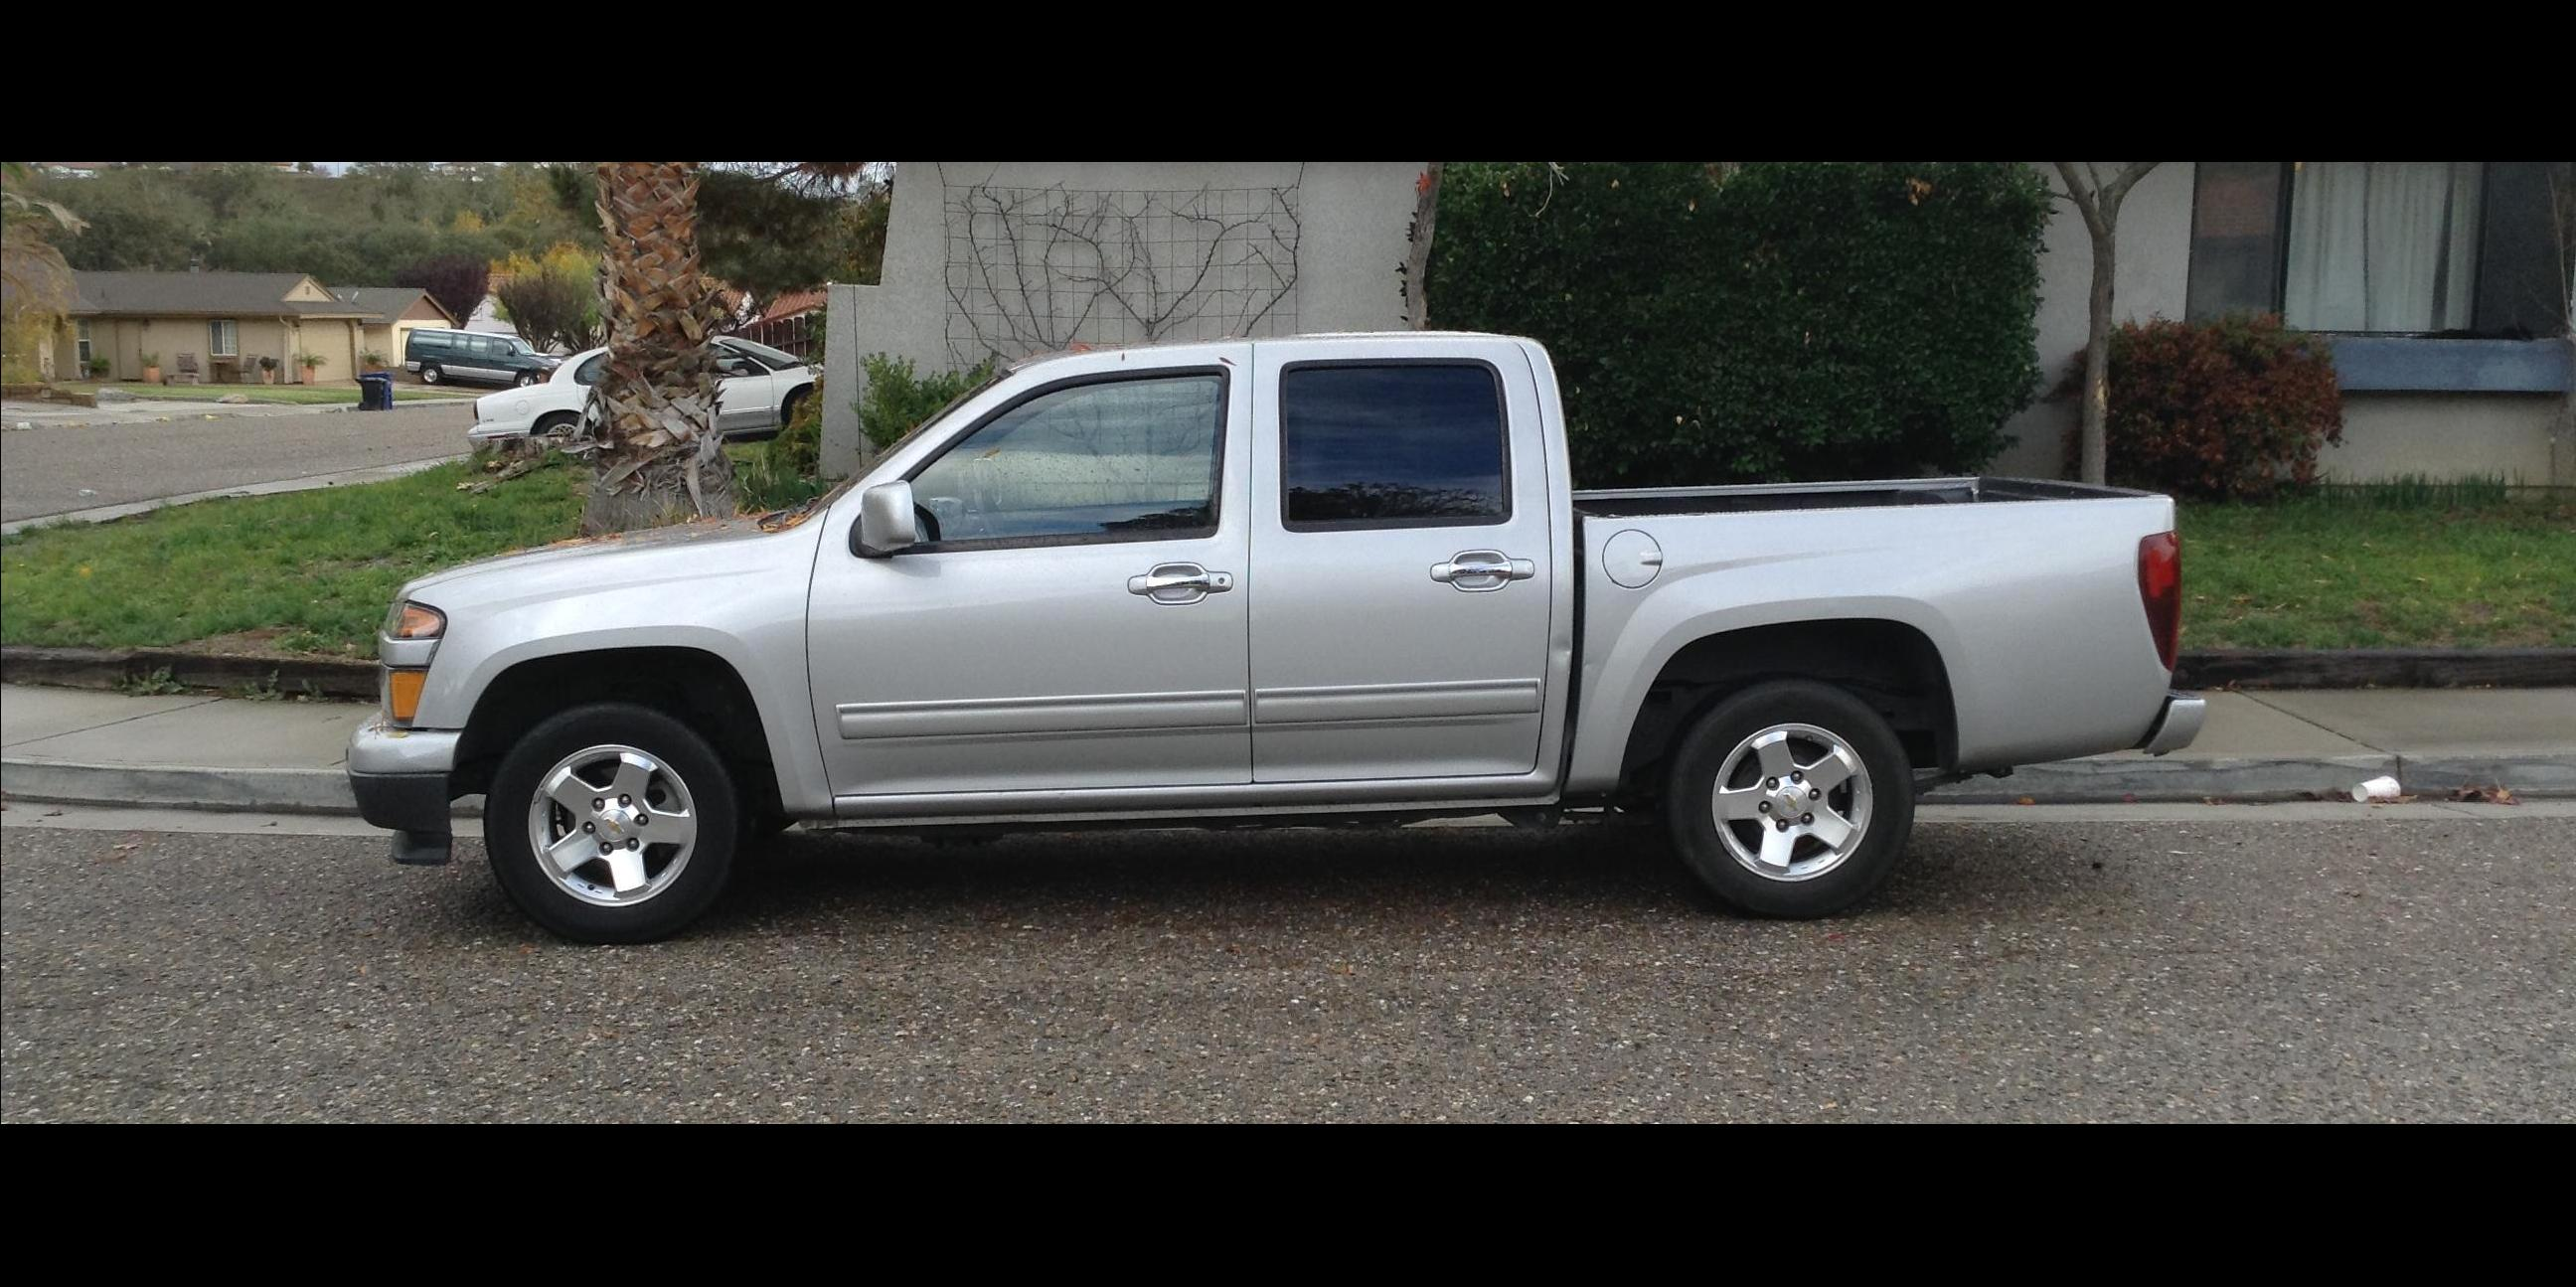 805colorado 39 s 2010 chevrolet colorado crew cab lt in 93446. Black Bedroom Furniture Sets. Home Design Ideas